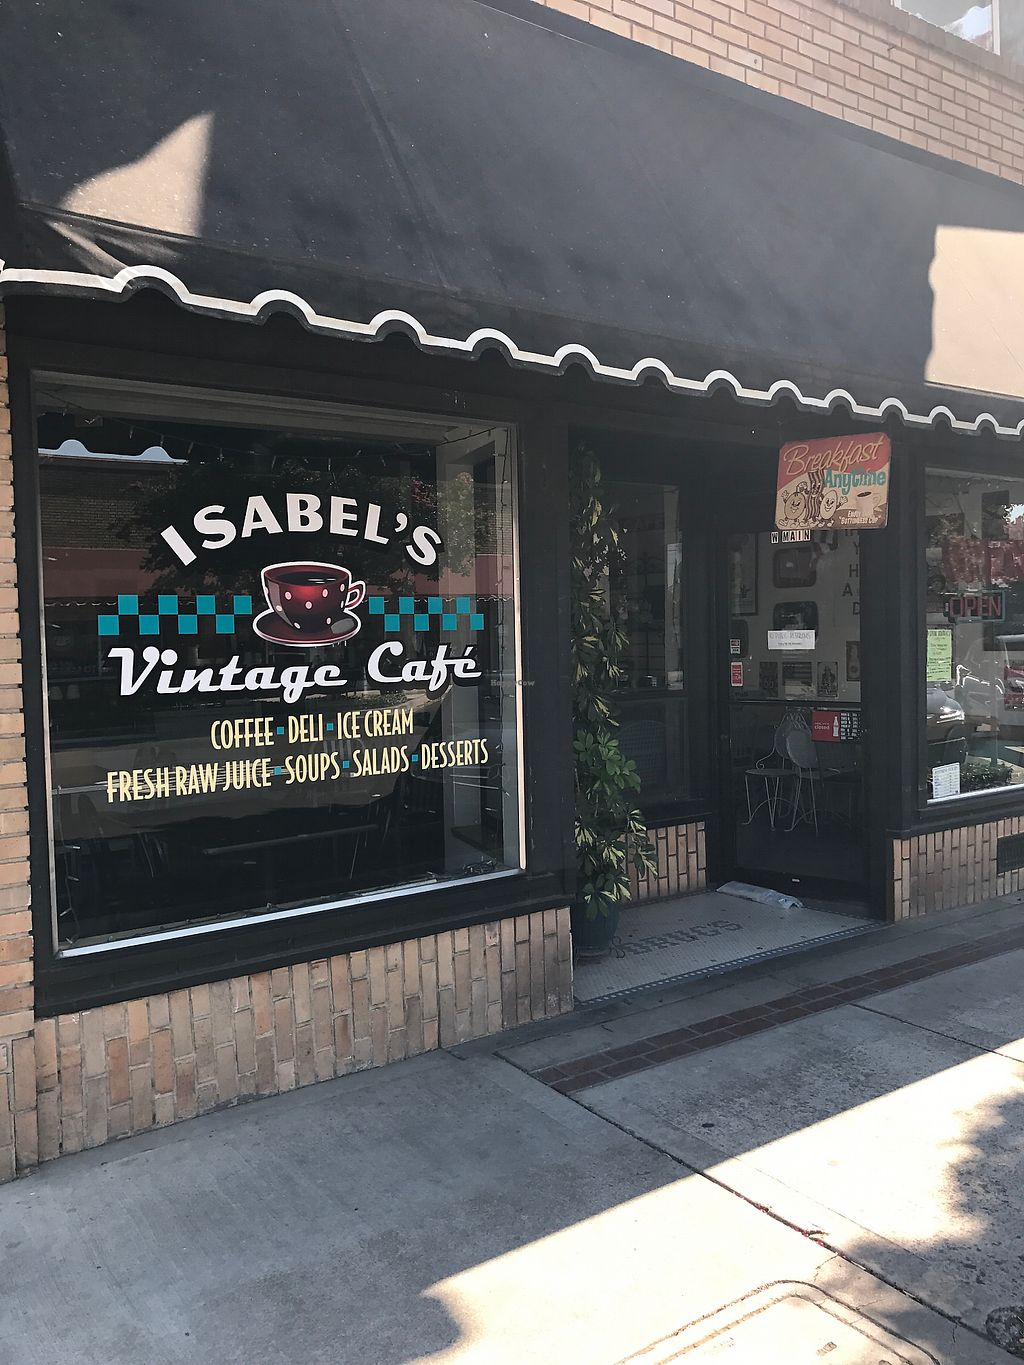 Vintage Café Isabel S Vintage Cafe Ripon California Restaurant Happycow